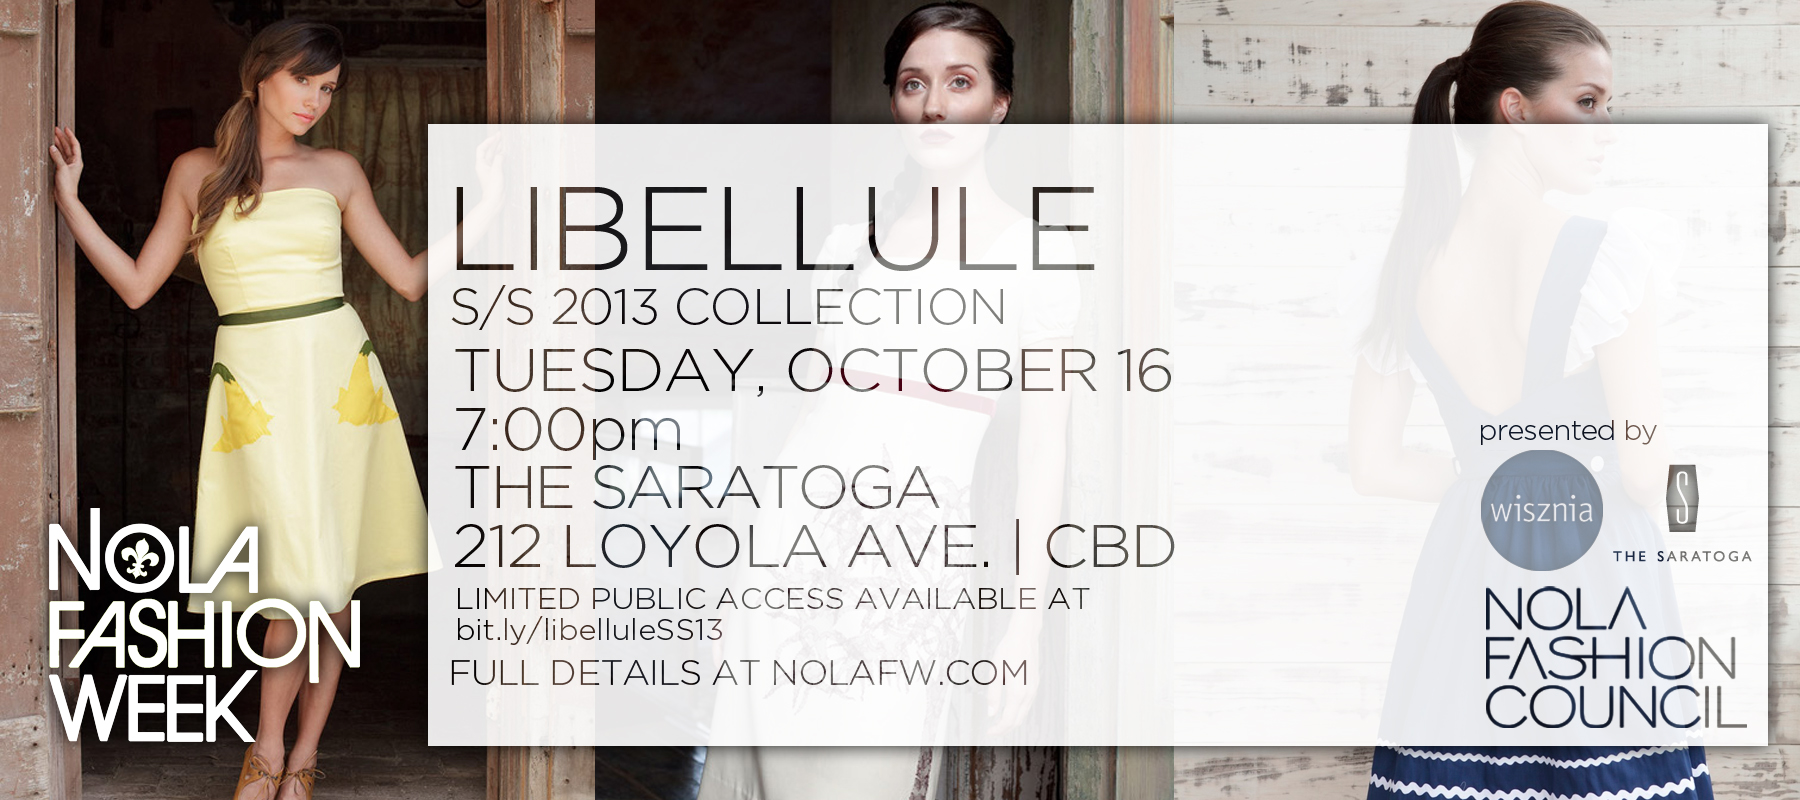 Libellule Nola Fashion Week